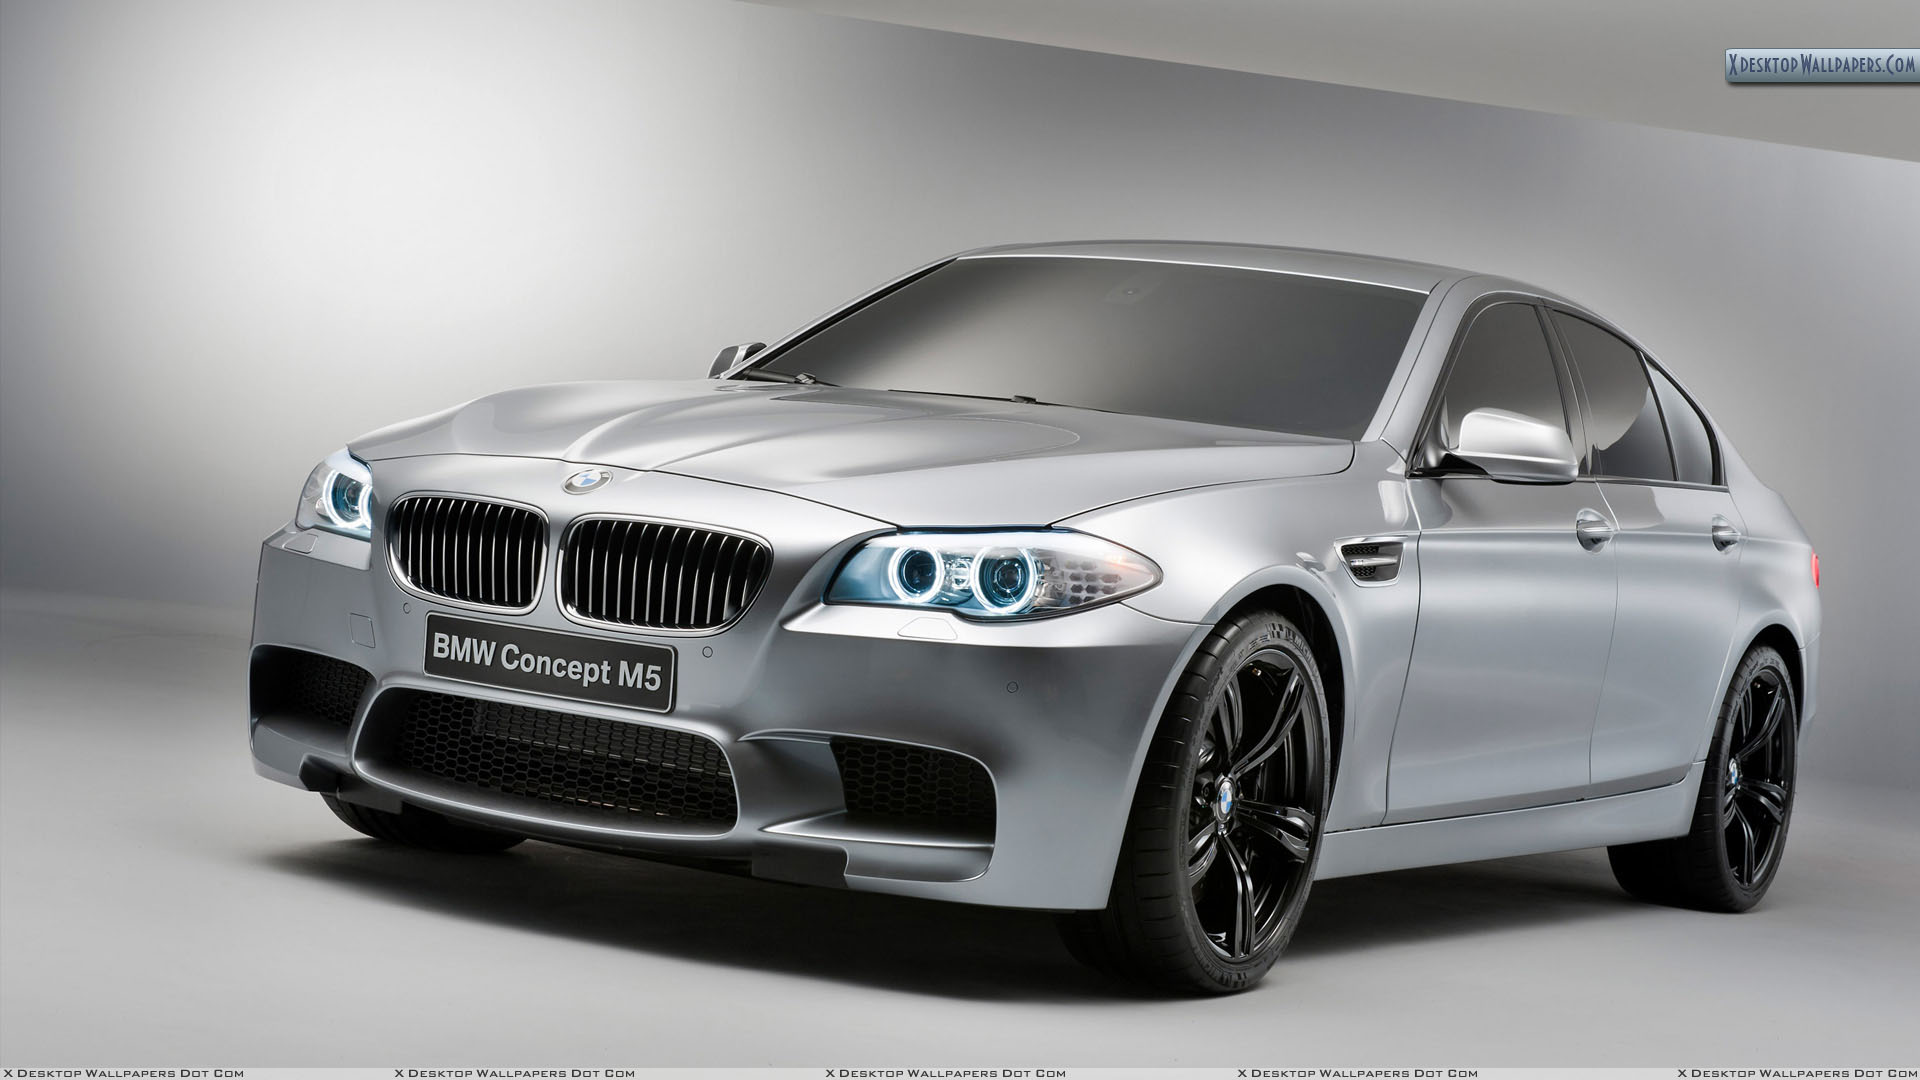 2012-BMW-M5-Concept-Front-Posee.jpg